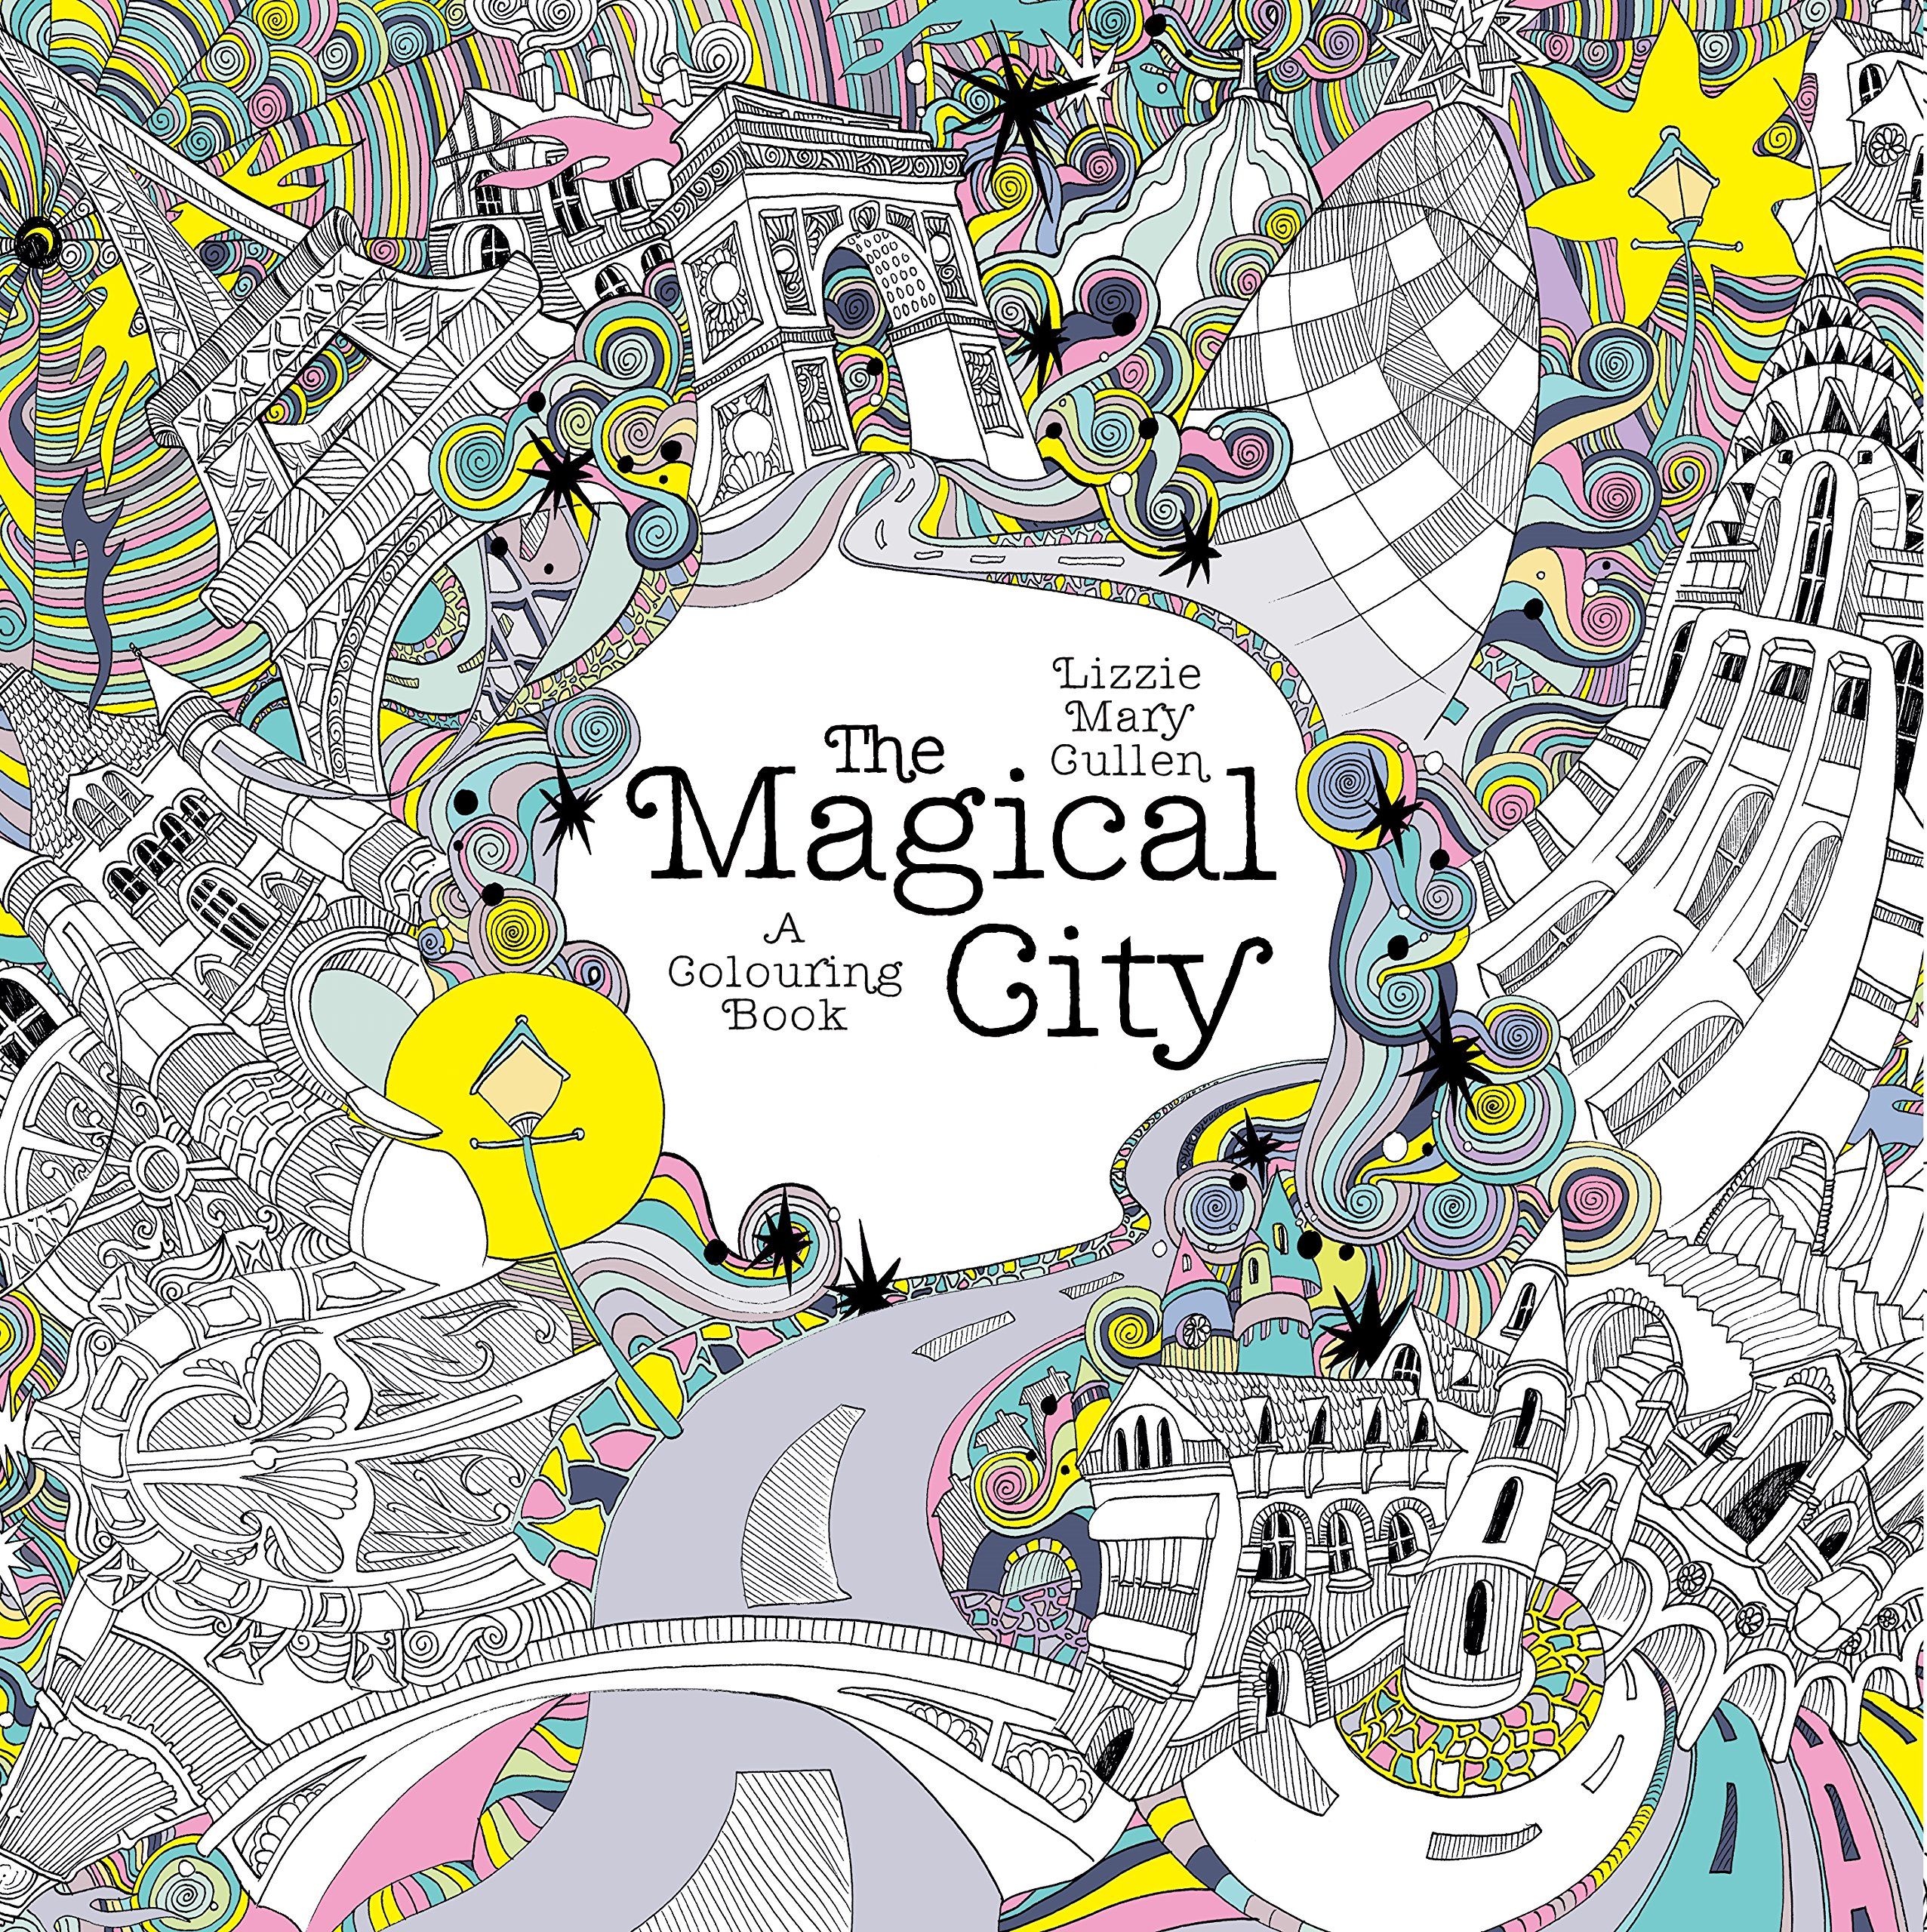 The Magical City: A Colouring Book (Magical Colouring Books)